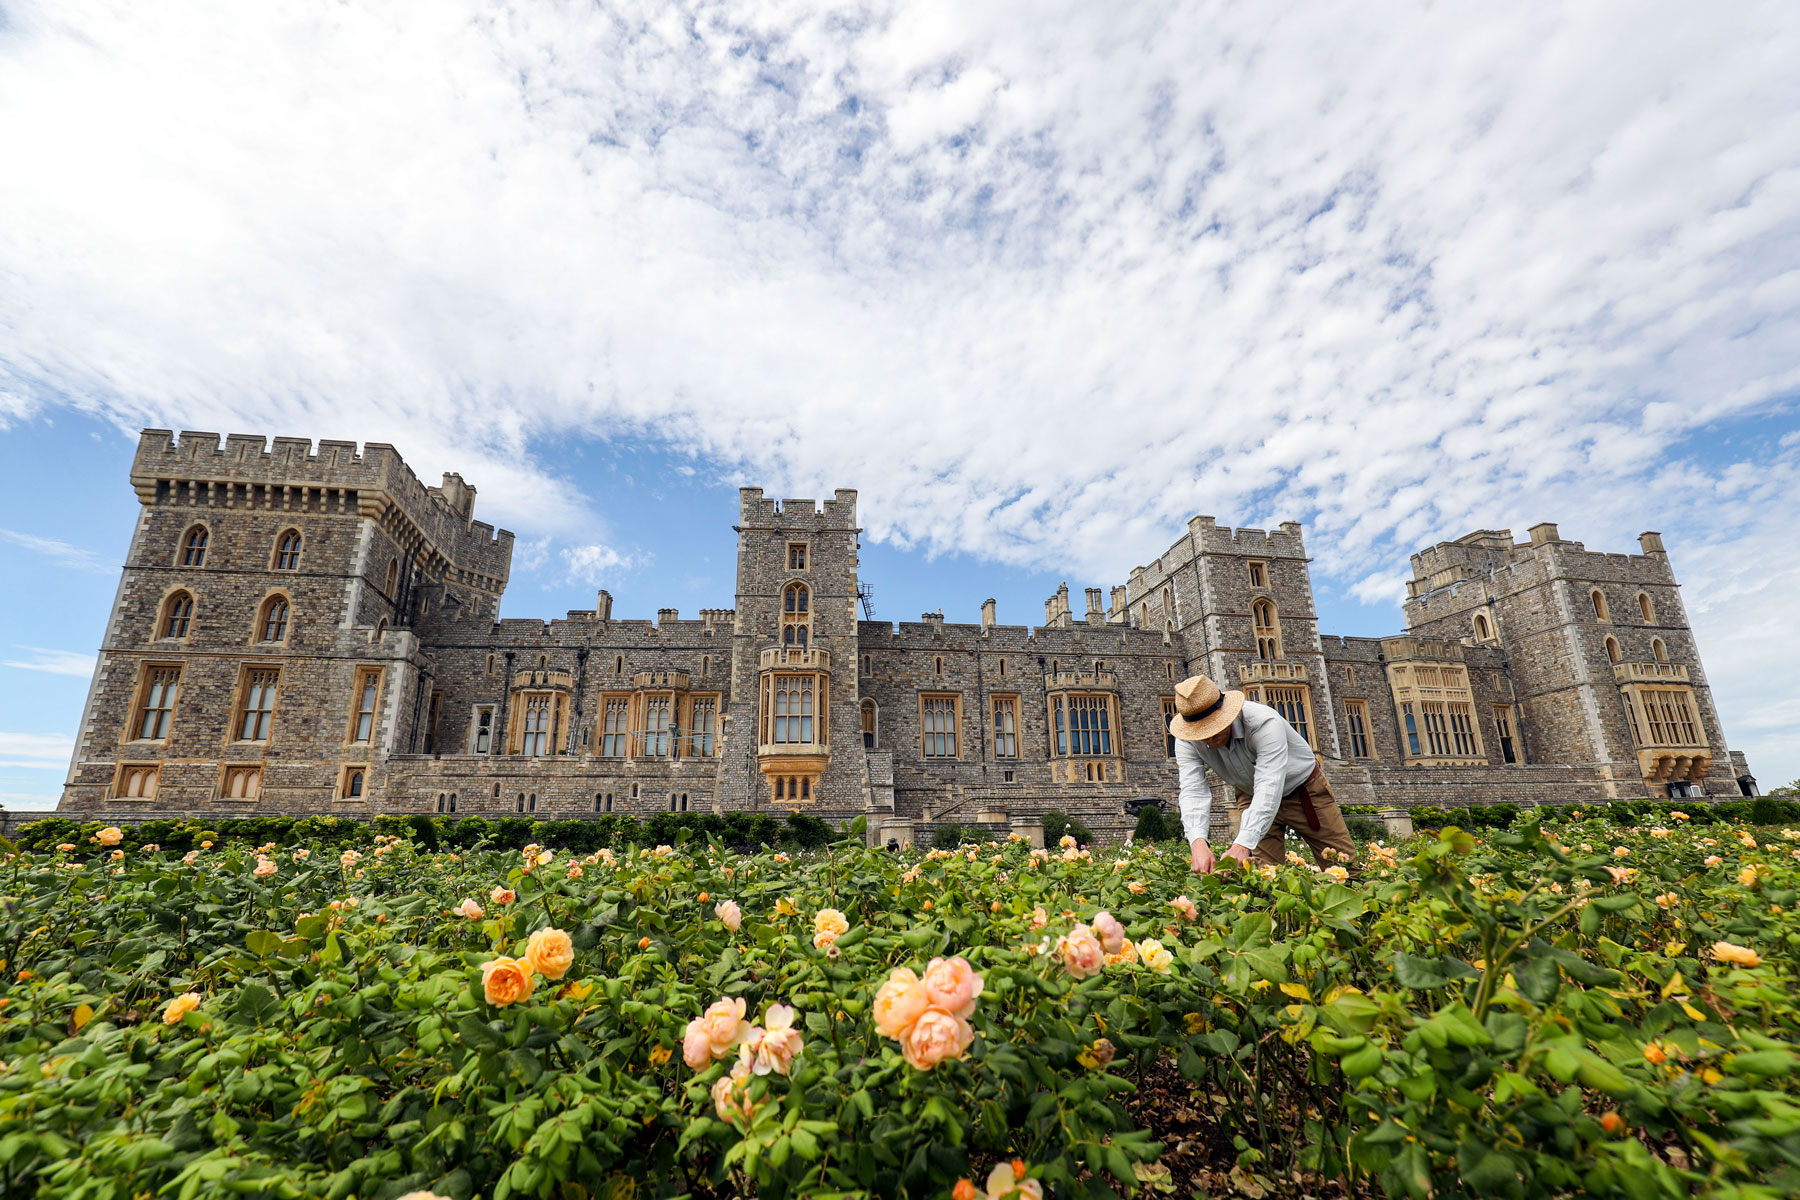 groundskeeper working in a garden at Windsor Castle